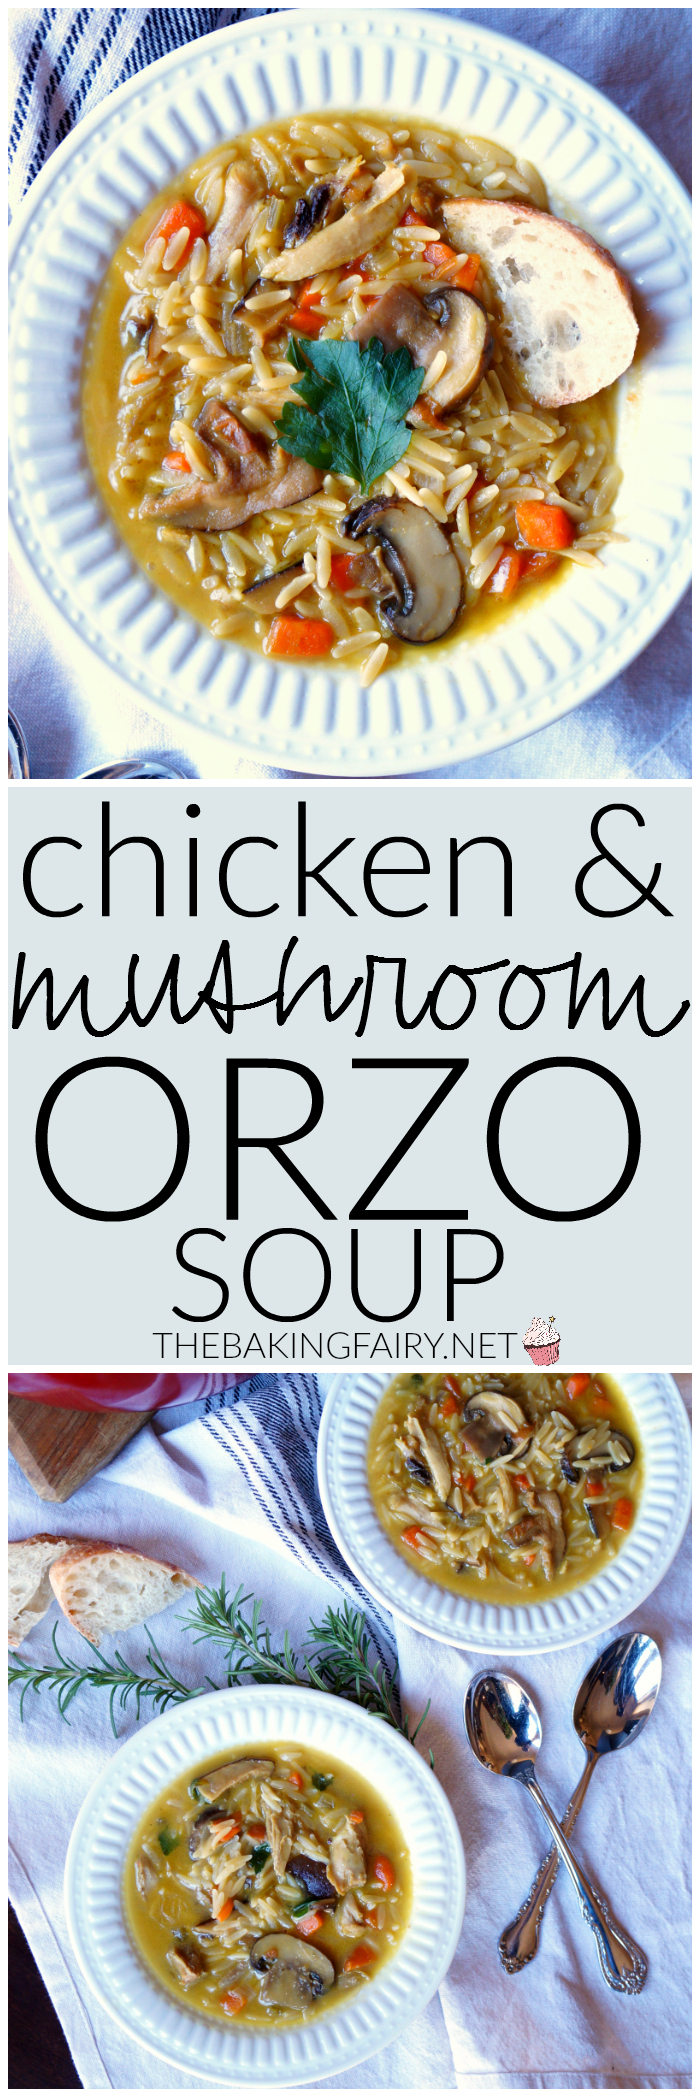 chicken mushroom orzo soup | The Baking Fairy